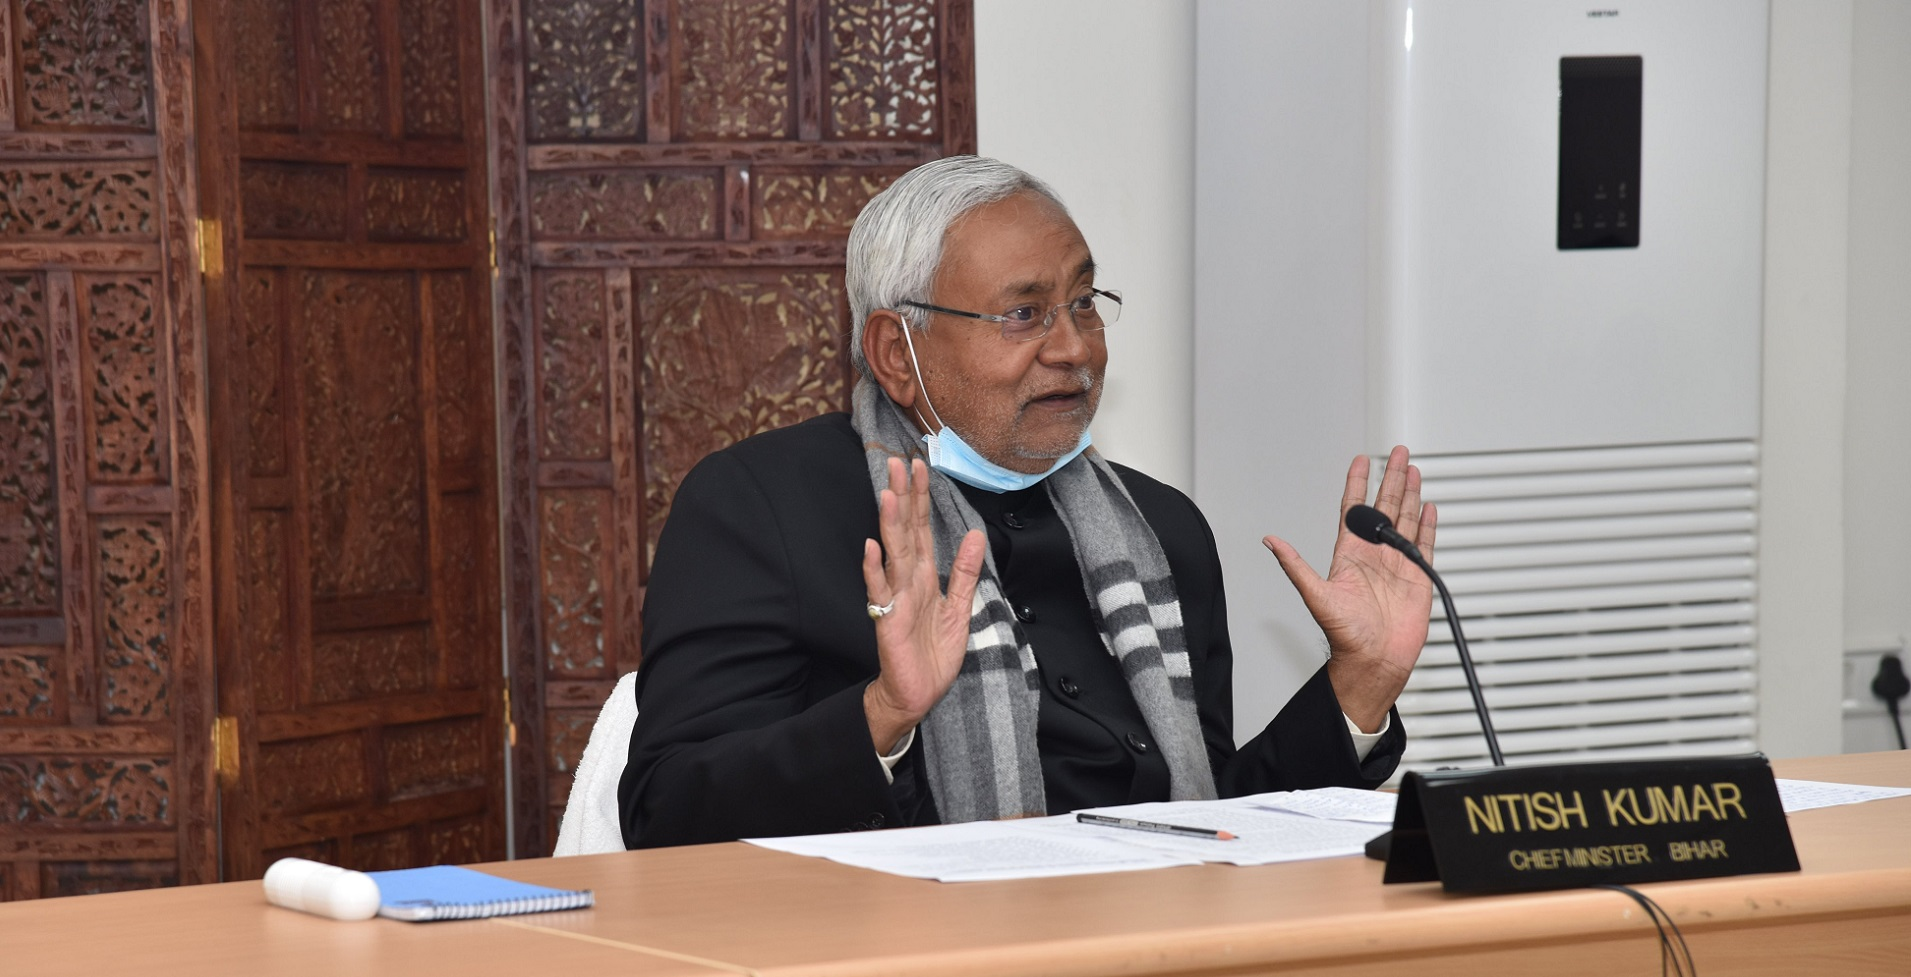 Nitish Kumar must bridge political-economic divide with balanced choices on policy fronts